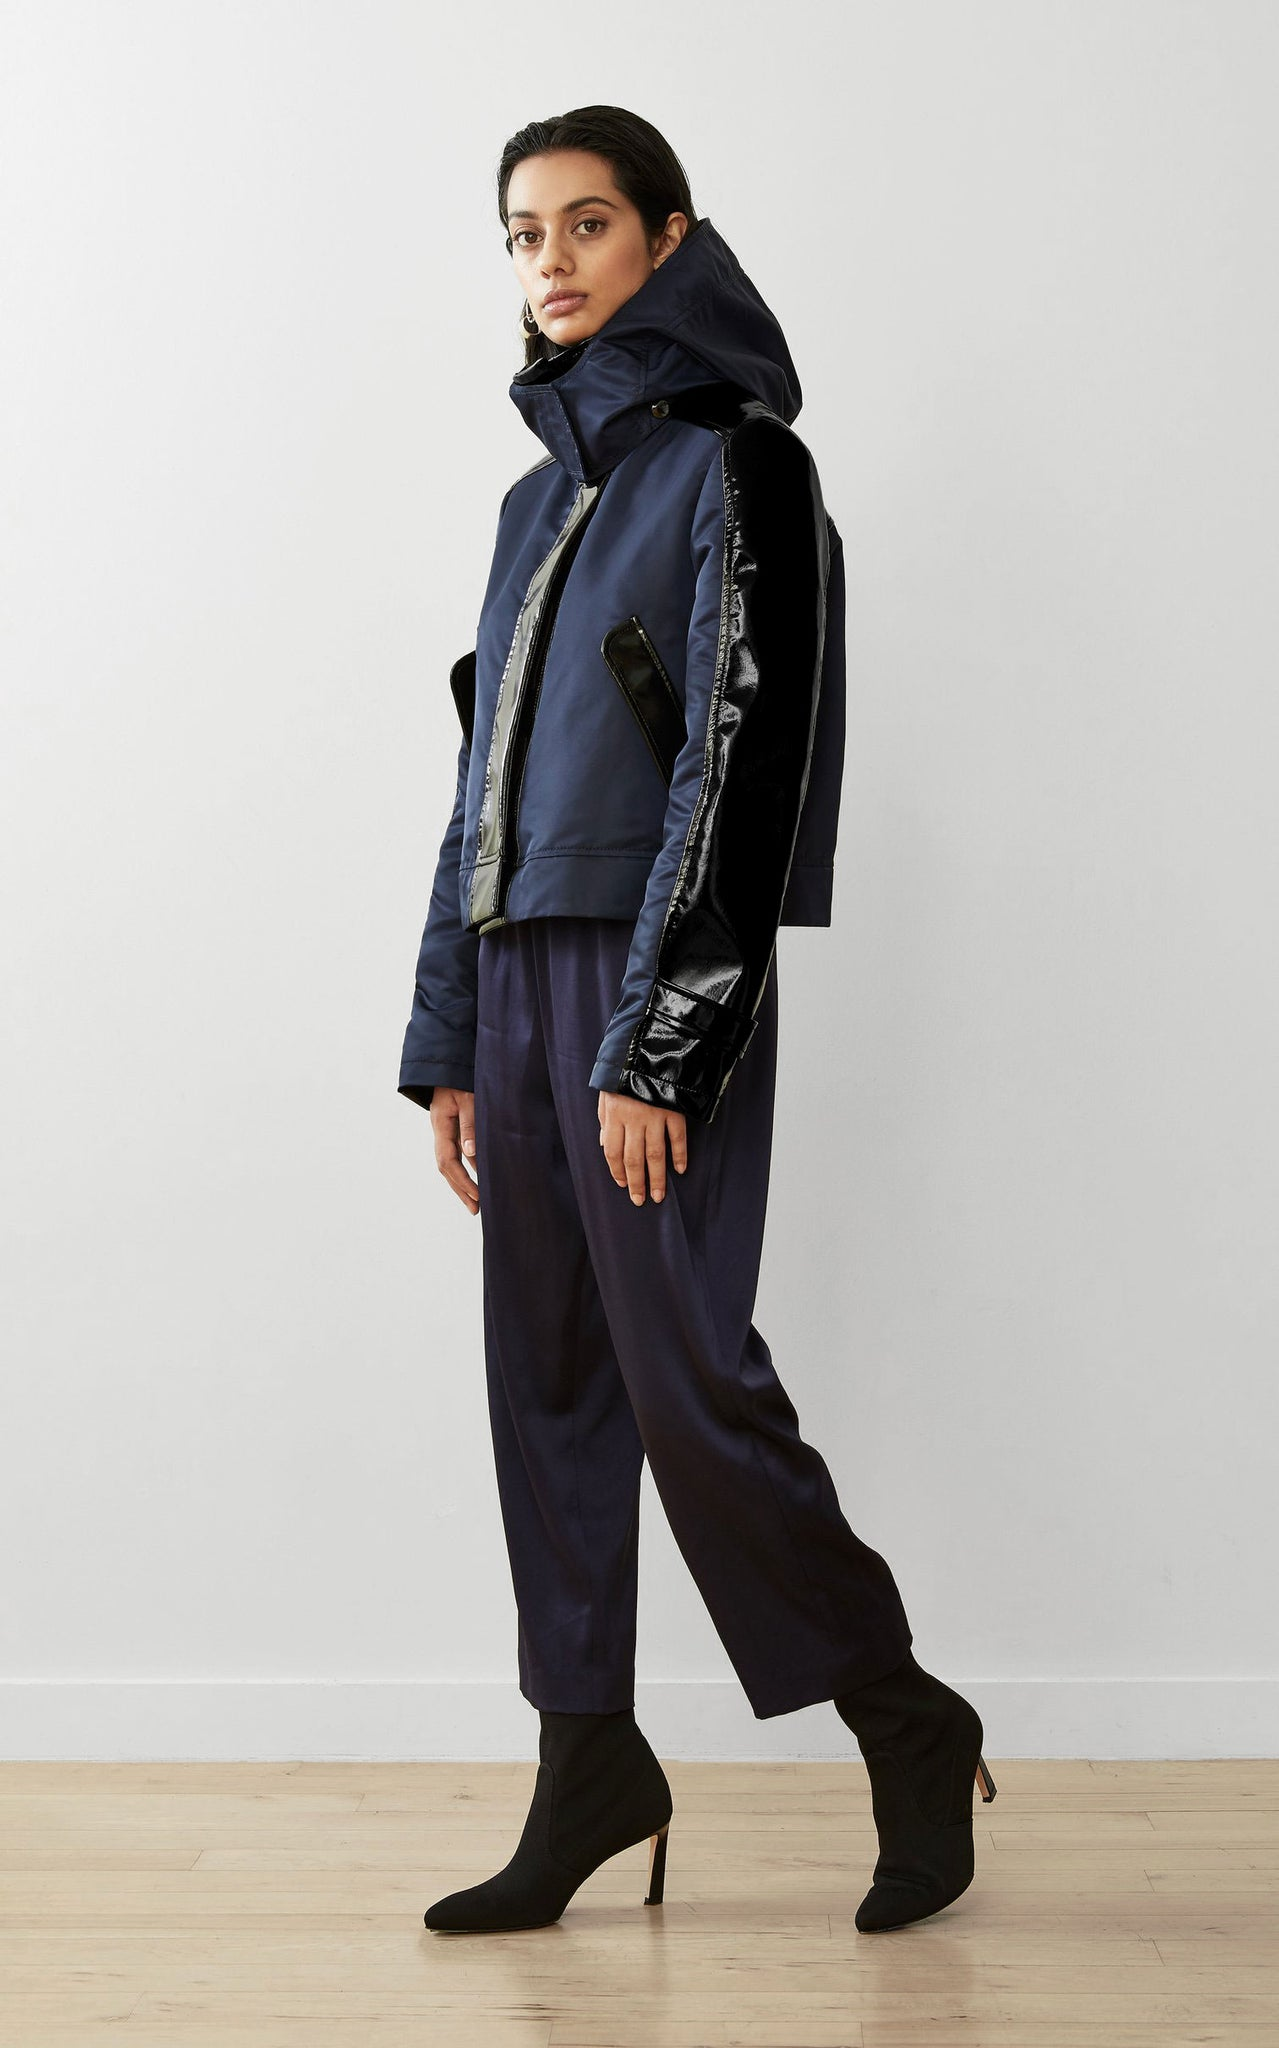 WATER-RESISTANT CONVERTIBLE SUSTAINABLE RAINCOAT